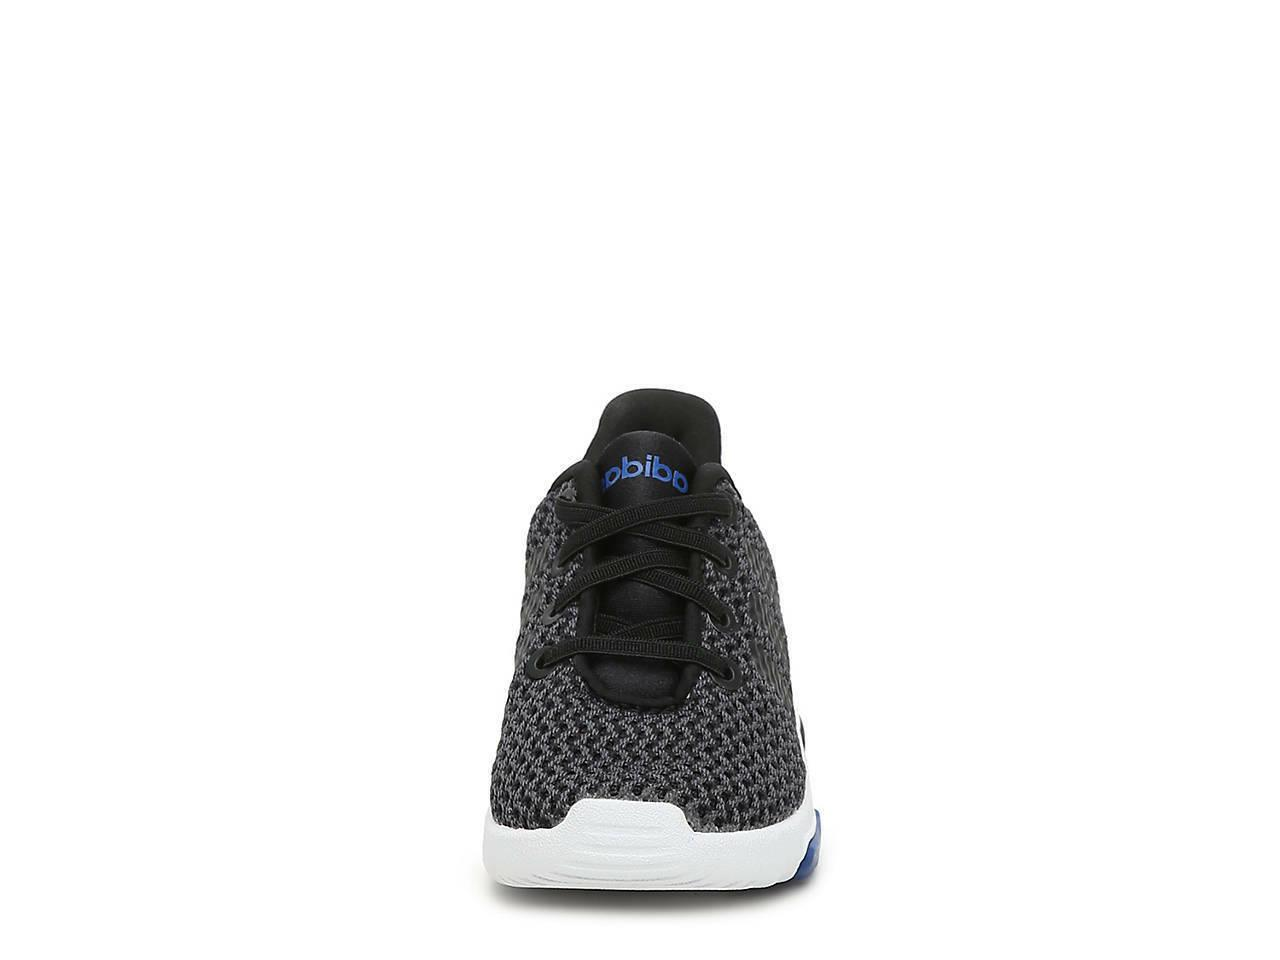 Adidas TR Toddler Shoes